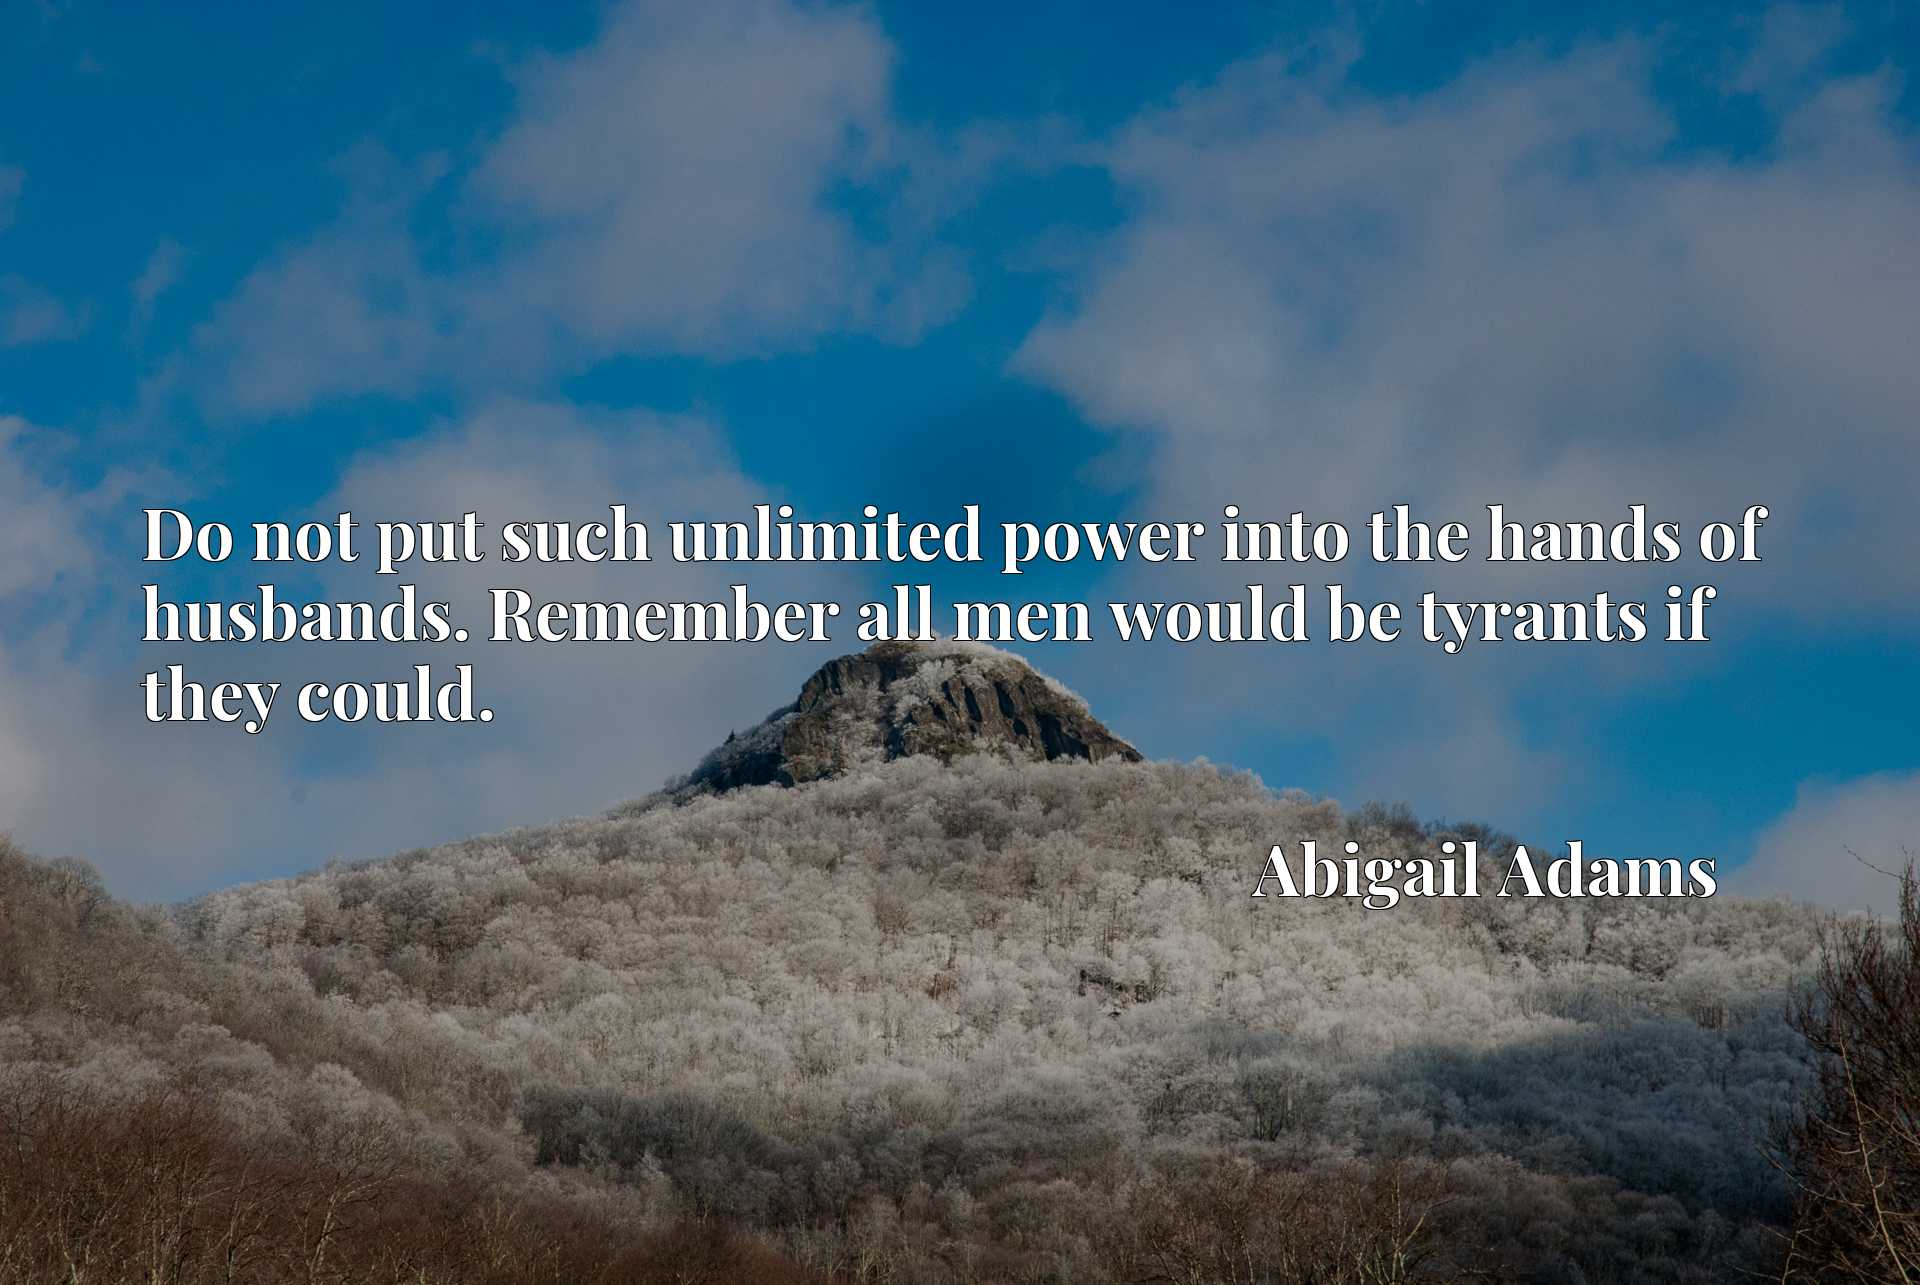 Quote Picture :Do not put such unlimited power into the hands of husbands. Remember all men would be tyrants if they could.